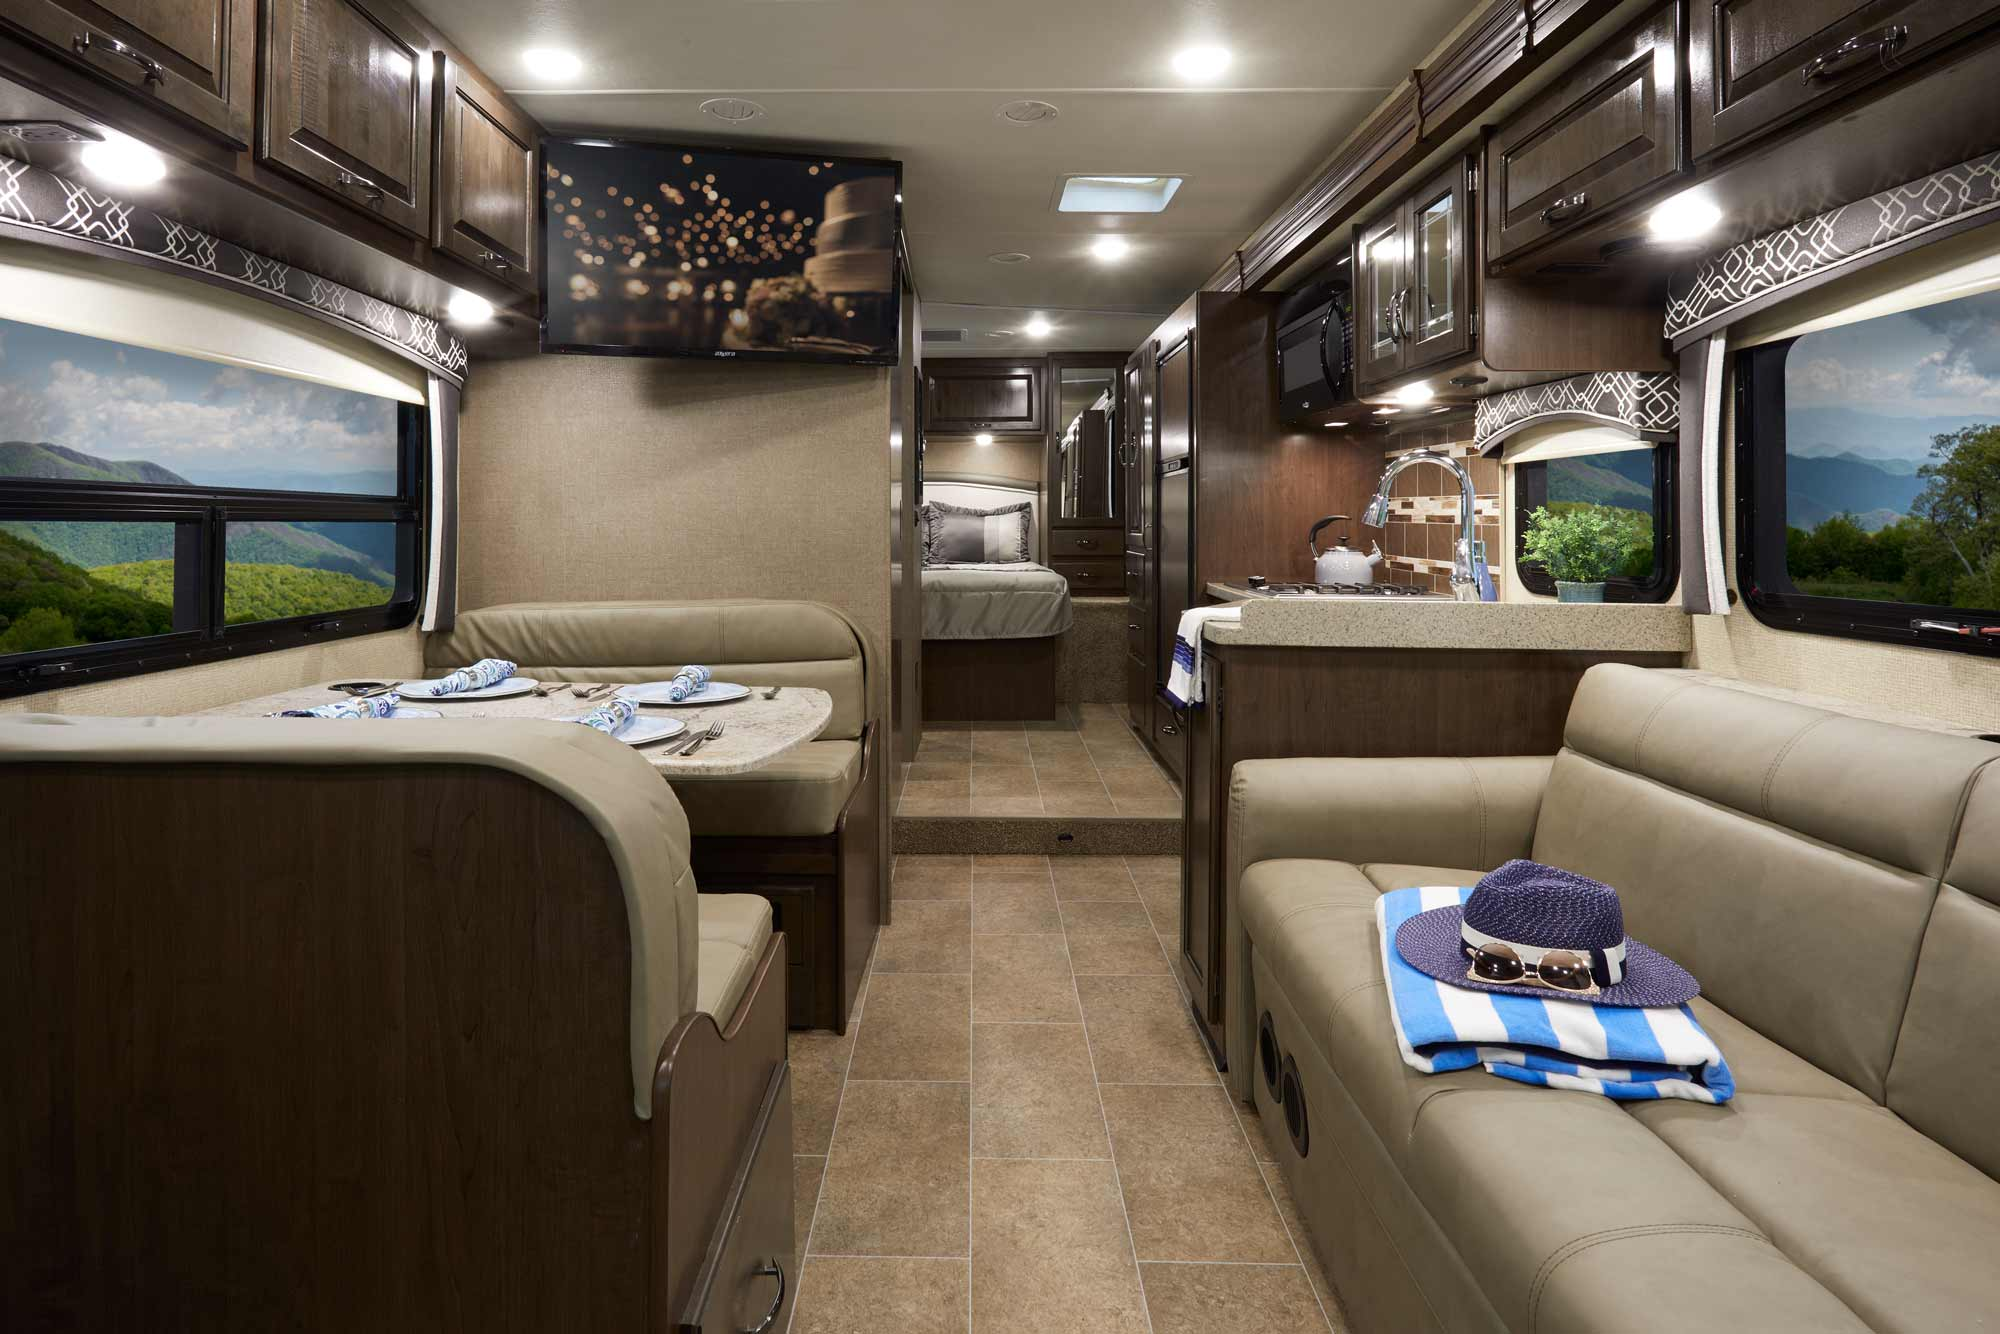 Thor Chateau Class C Motorhome Review: Take Your Home on the Road